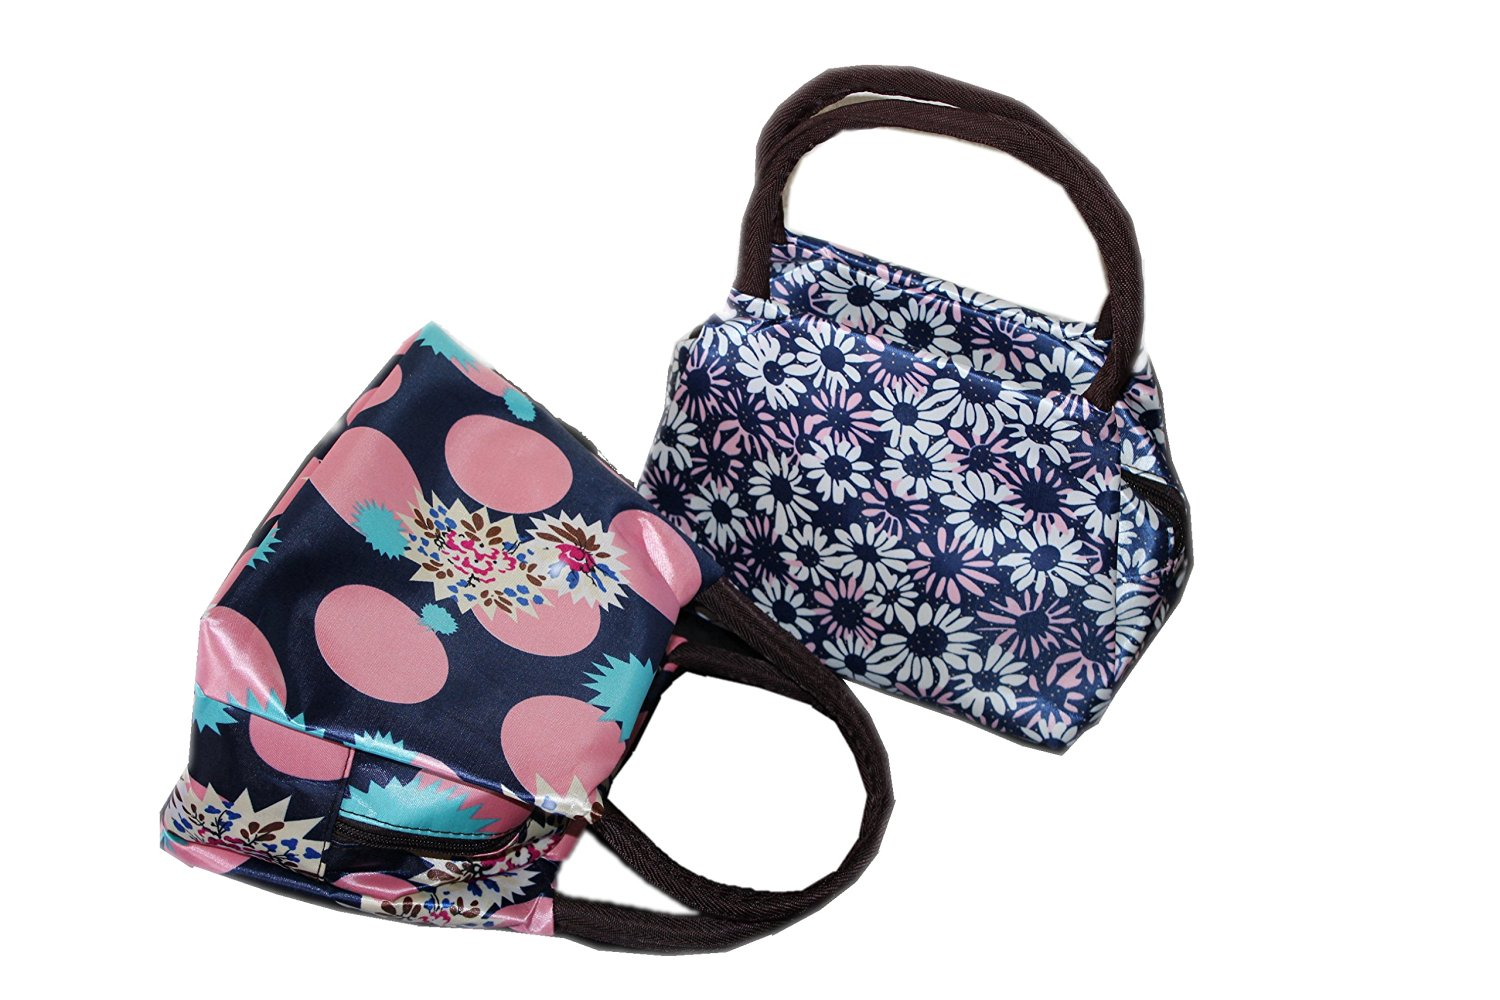 ba8f54309ba0 Cheap Toiletry Bags For Kids, find Toiletry Bags For Kids deals on ...